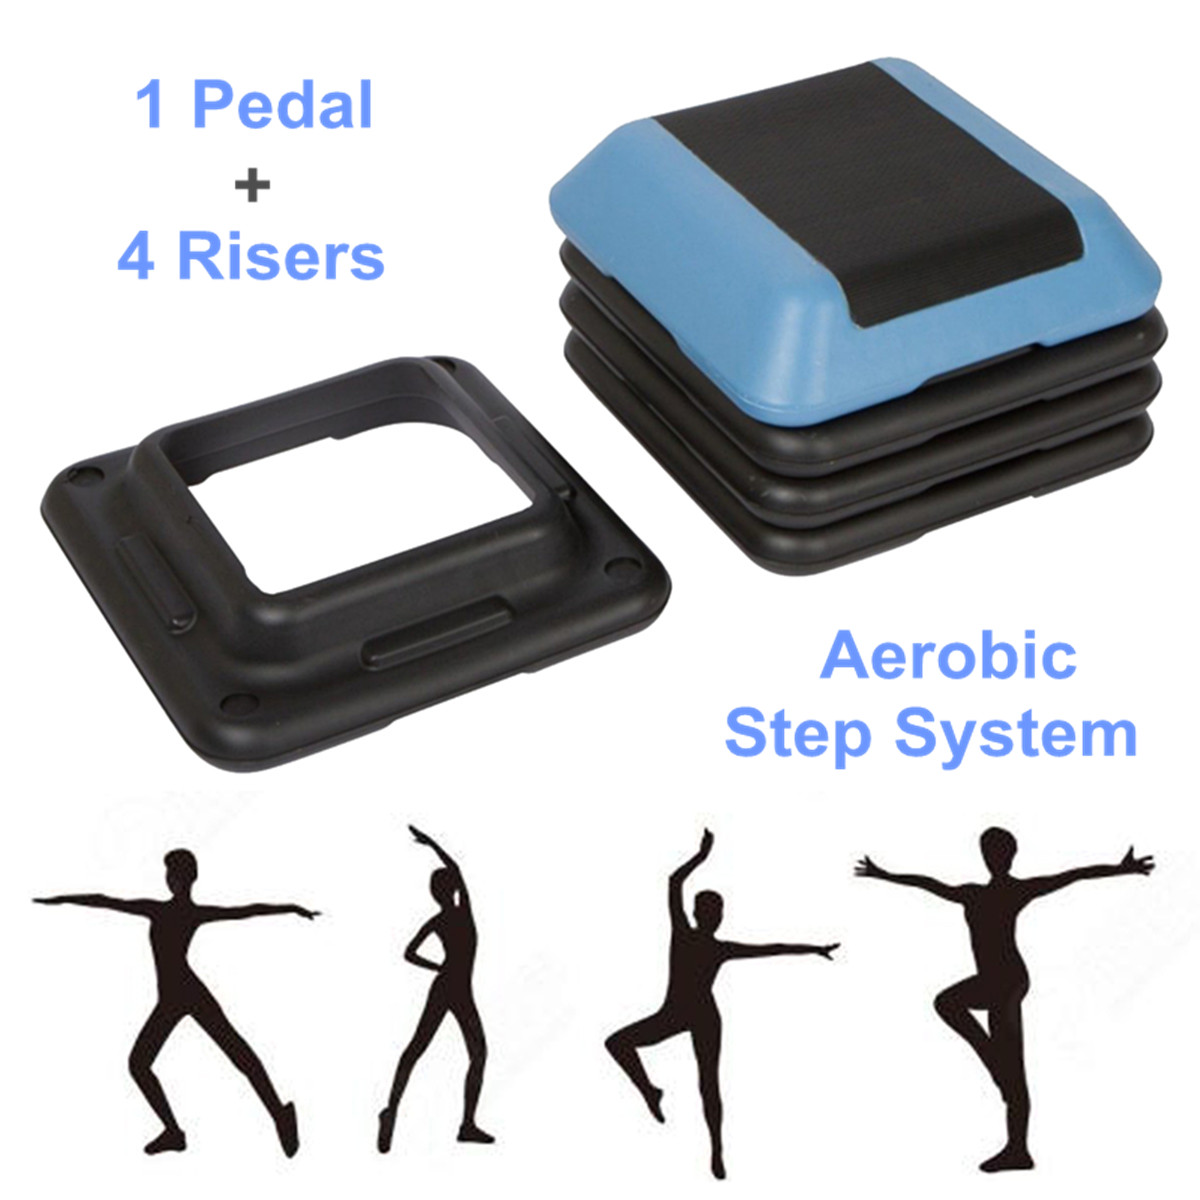 16-039-039-Aerobic-Step-4-Risers-Fitness-Exercise-Stepper-Cardio-Workout-Pedals thumbnail 2